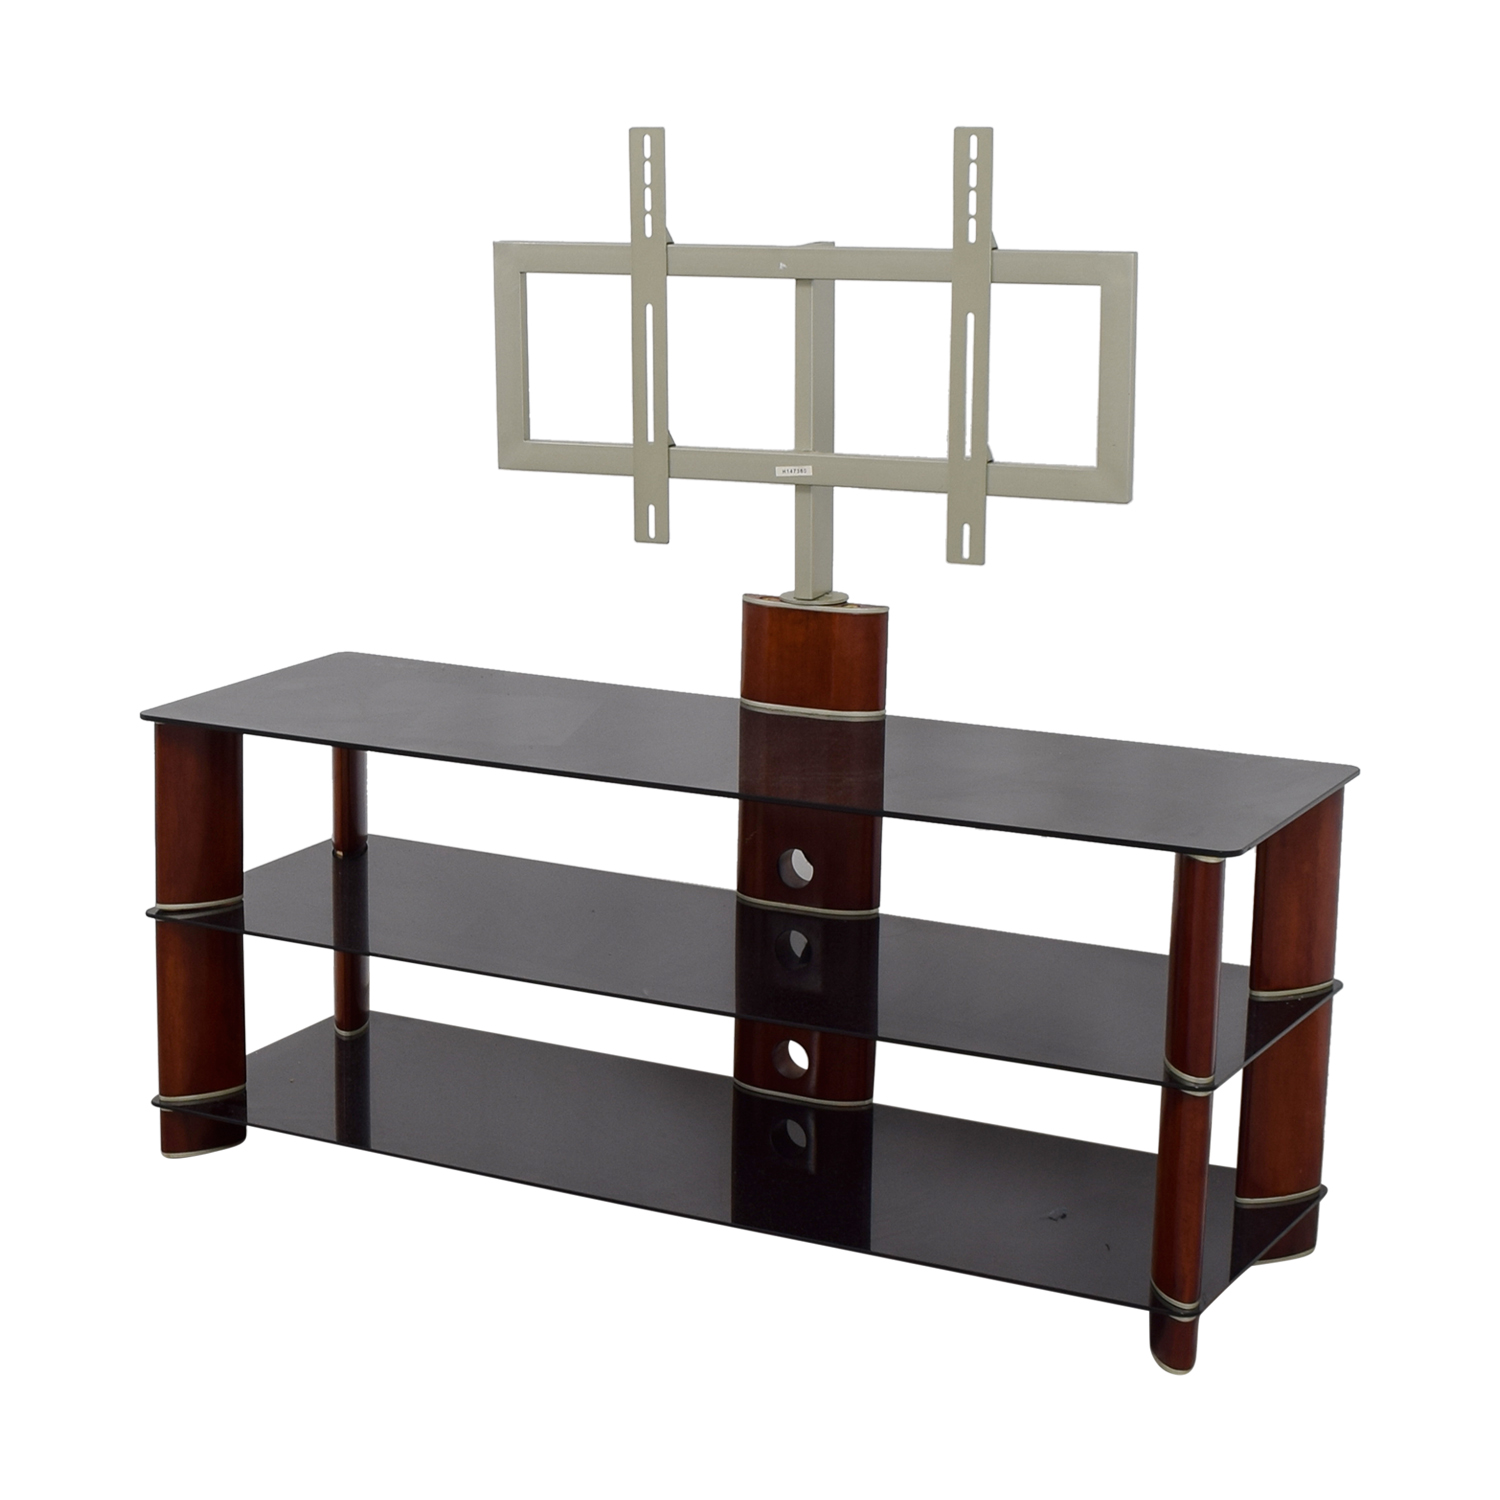 PC Richards PC Richards Tempered Glass TV Stand glass/wood